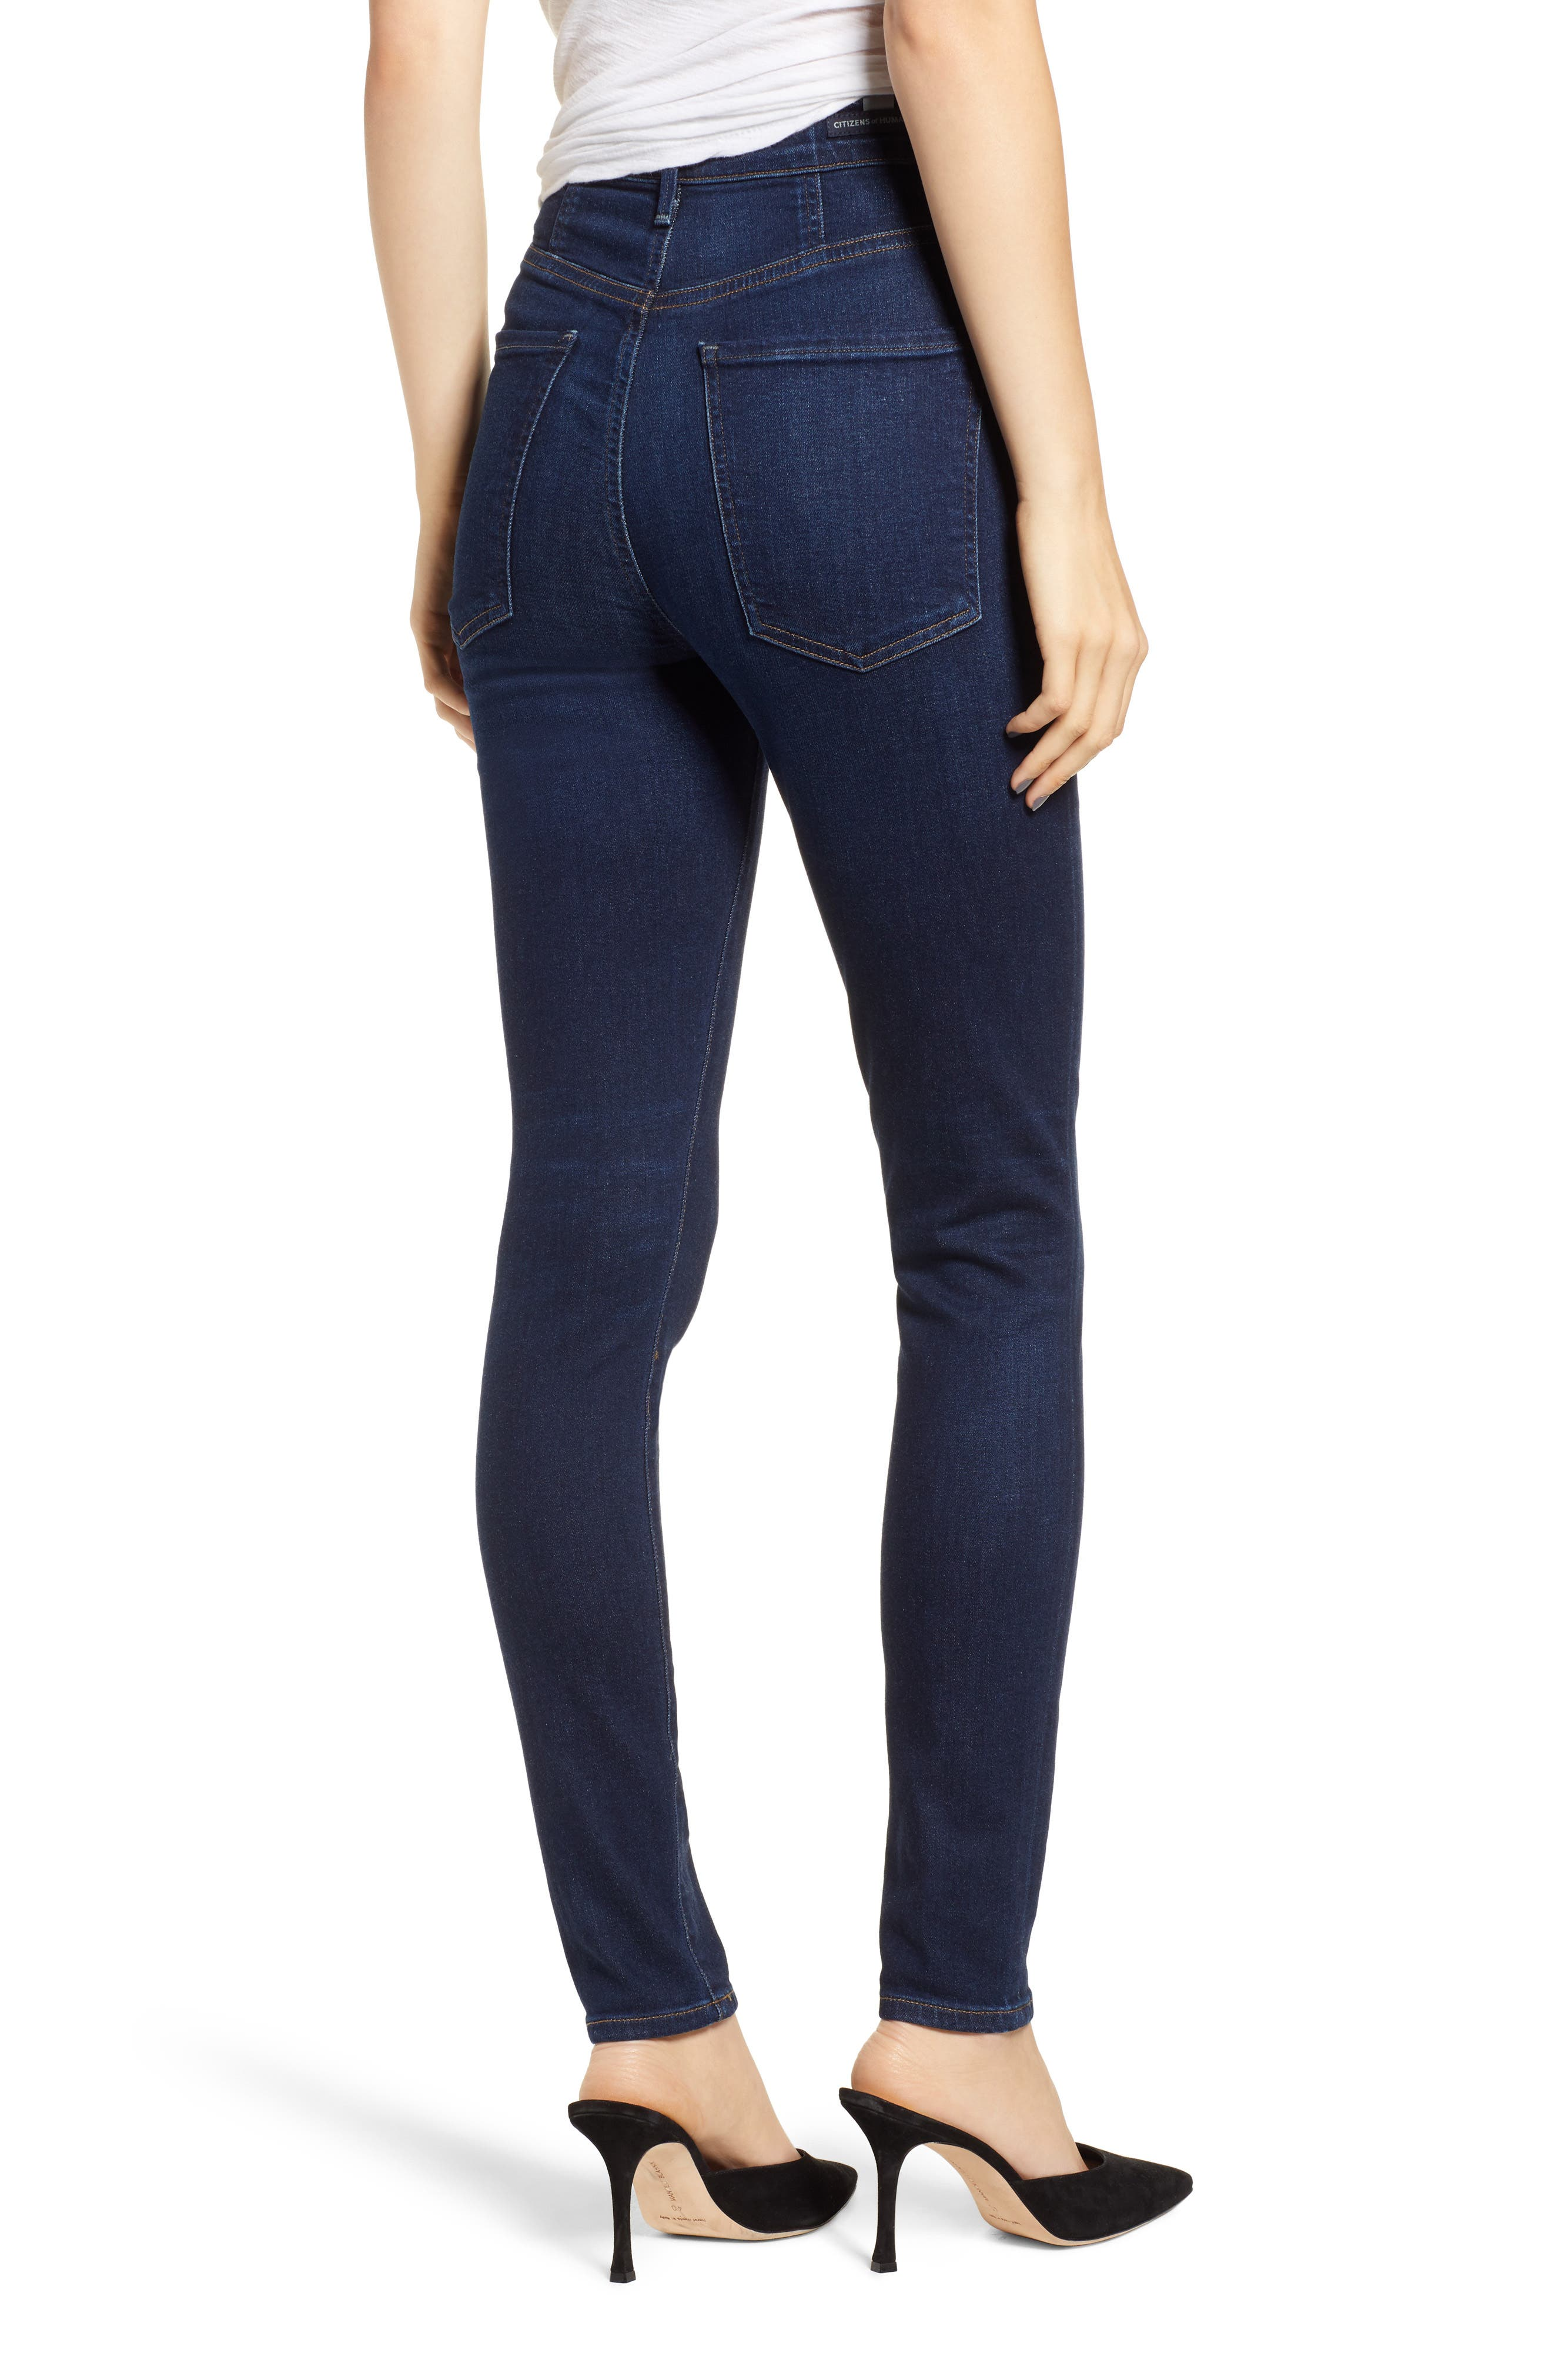 Chrissy High Waist Skinny Jeans,                             Alternate thumbnail 2, color,                             GALAXY